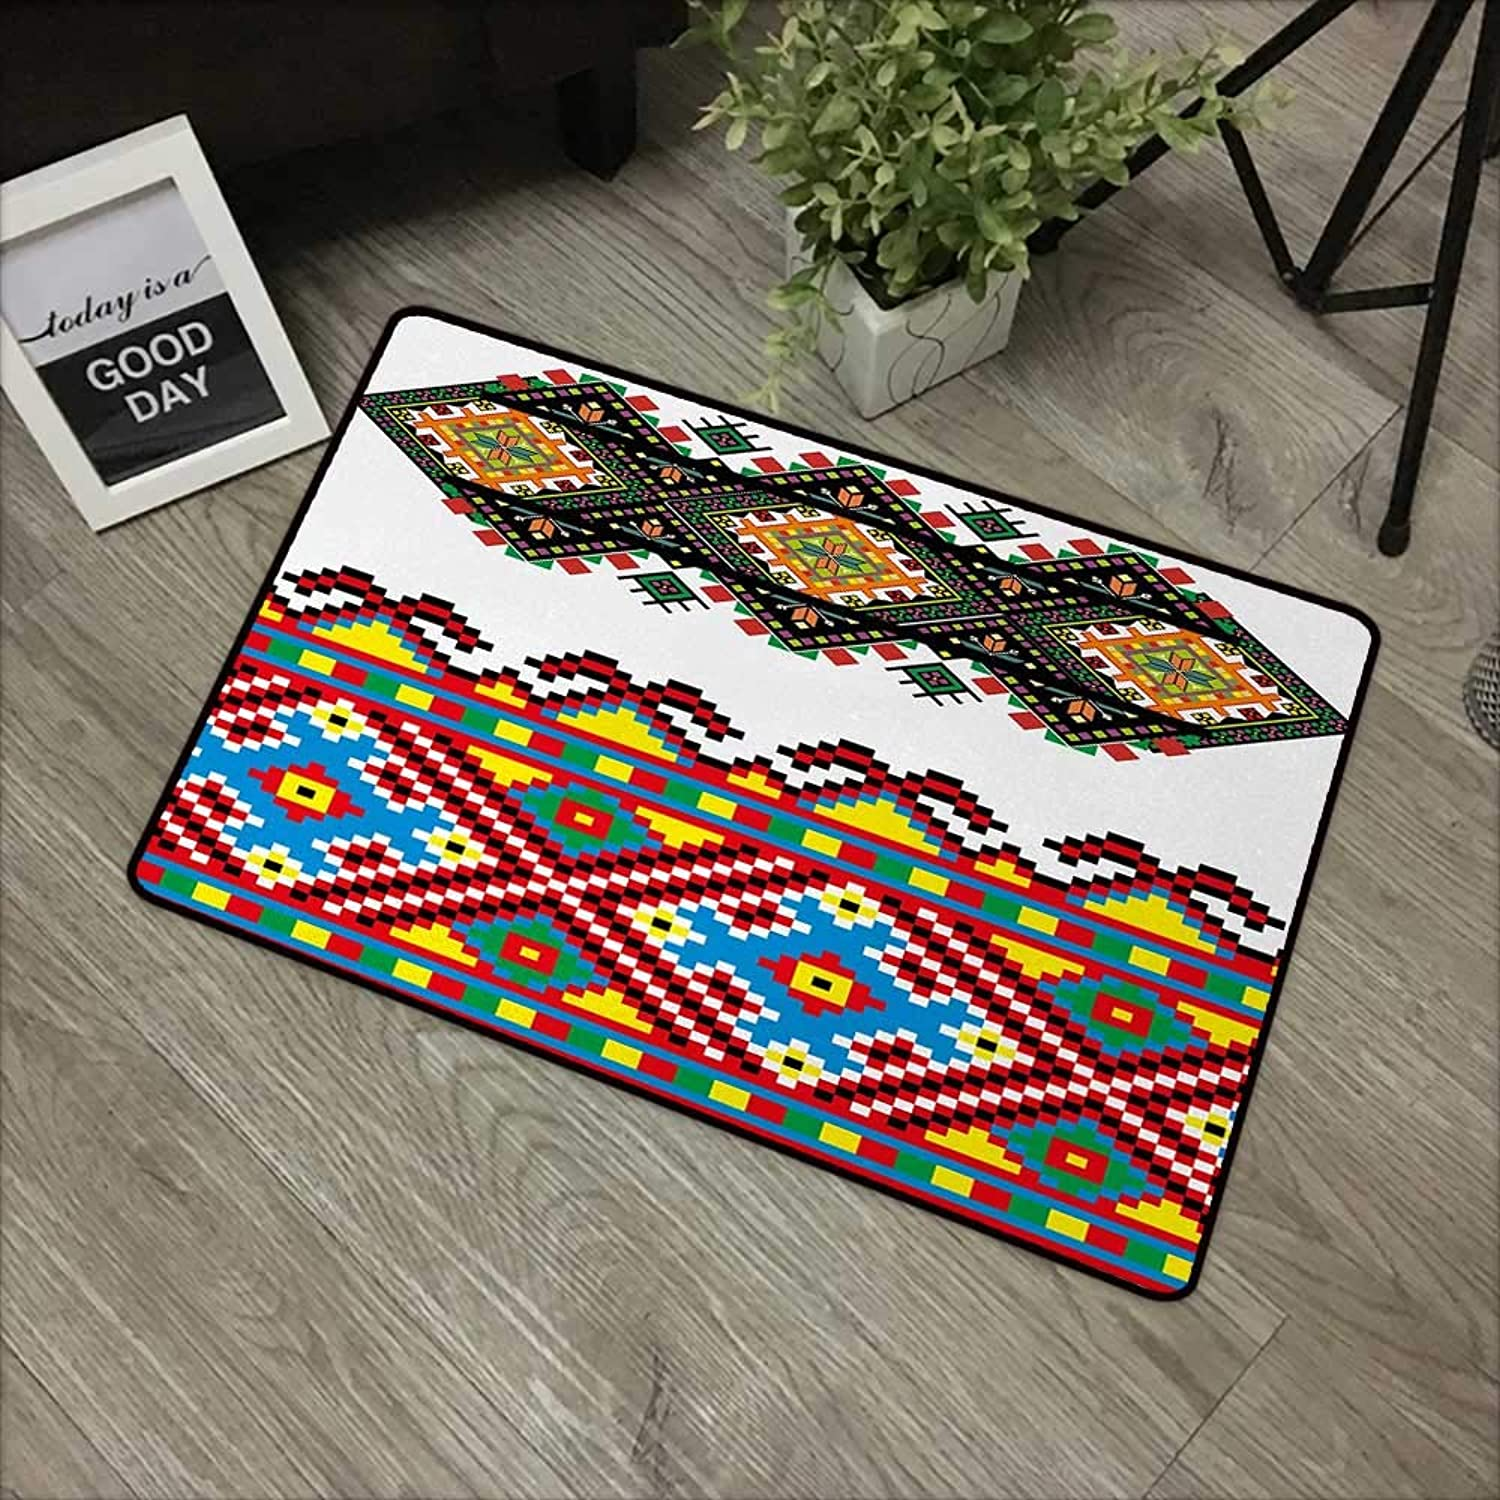 Interior mat W35 x L59 INCH Ethnic,Retro Ukrainian Embroidery Ornament Traditional Cultural Folk Heritage Artful Design,Multicolor Natural dye printing to predect your baby's skin Non-slip Door Mat Ca